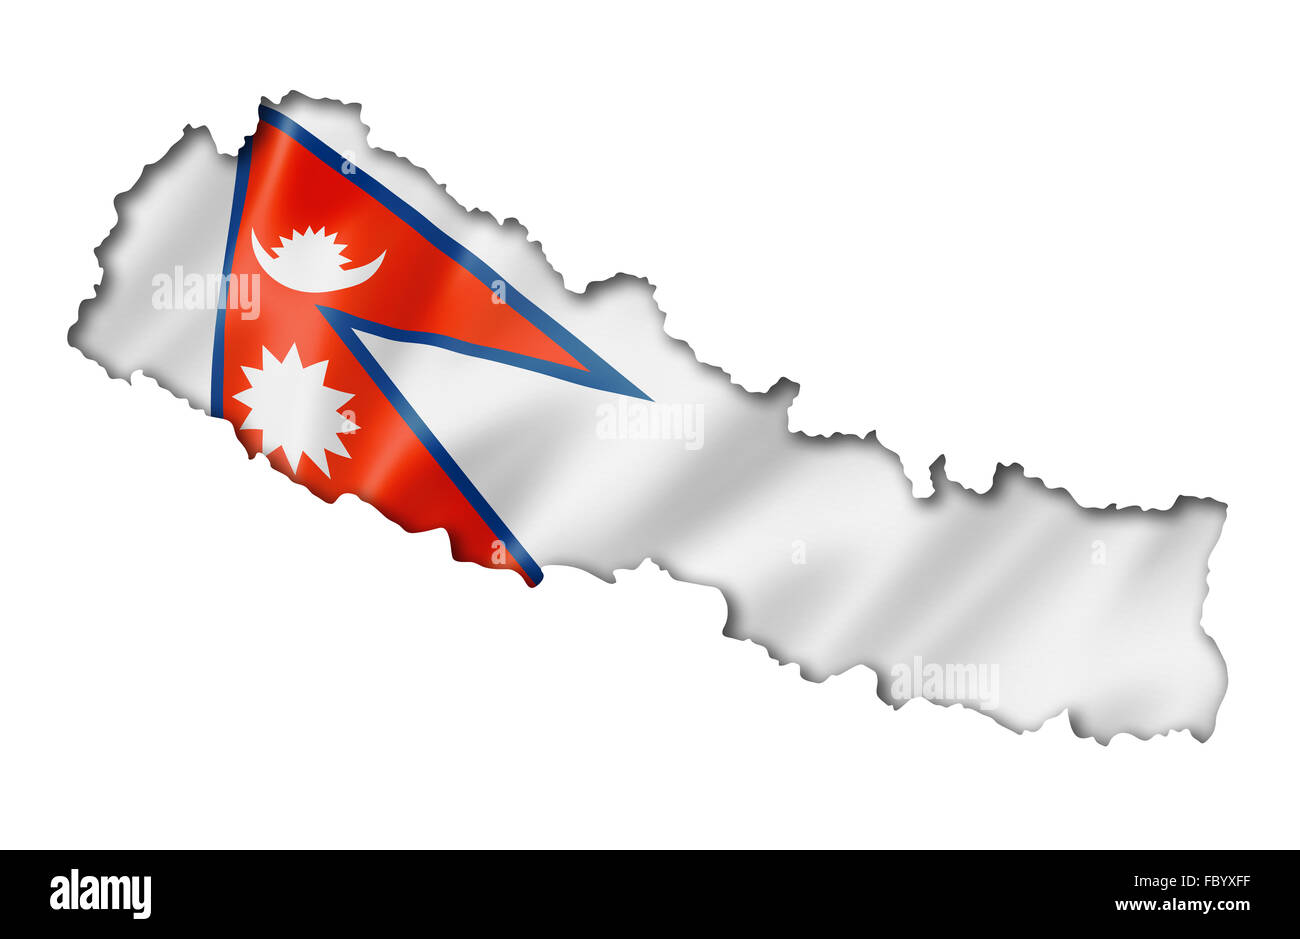 Nepalese flag map Stock Photo: 93426579 - Alamy